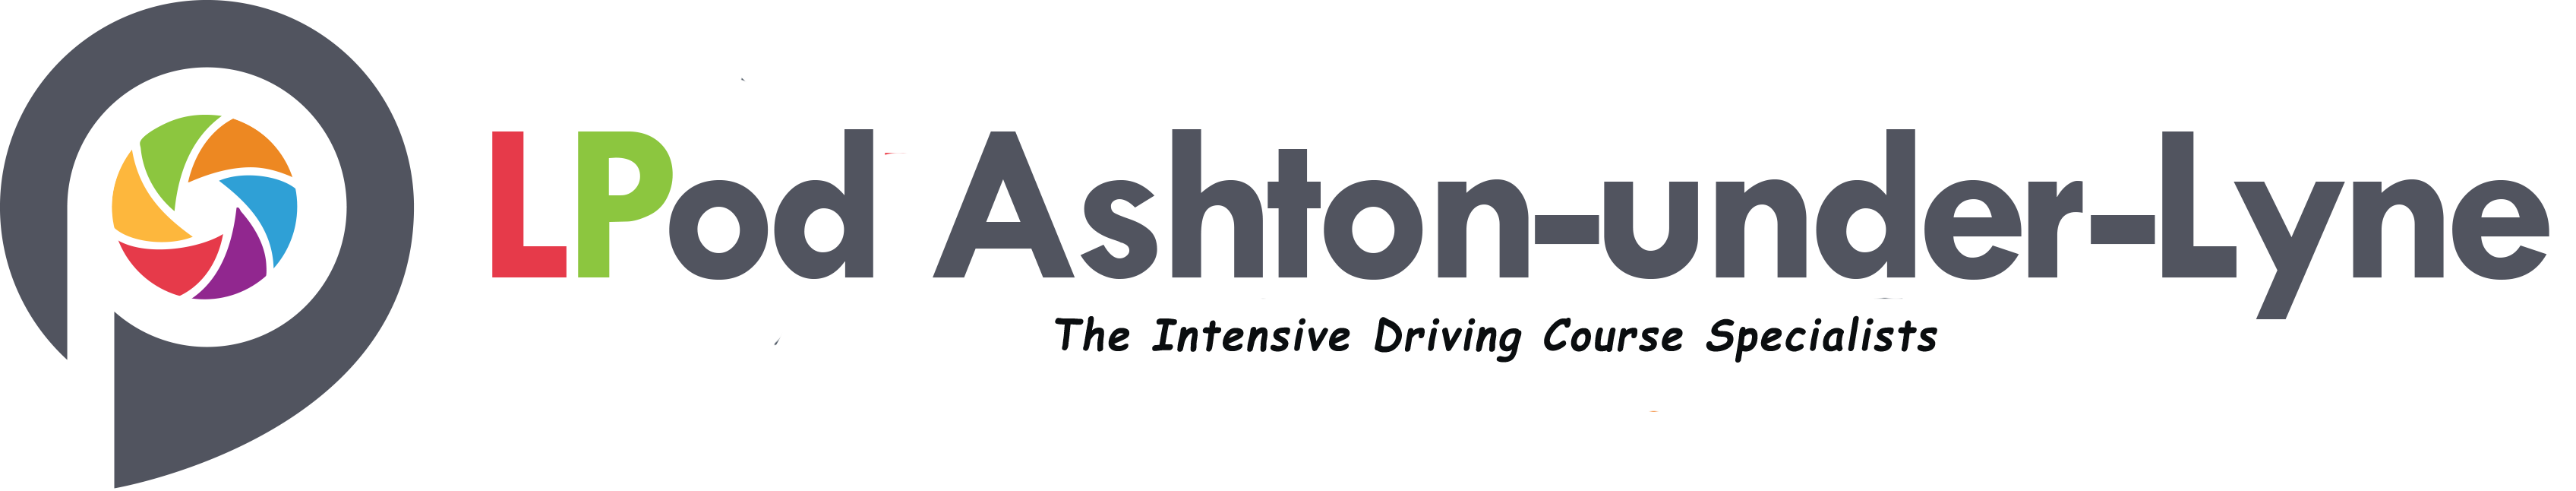 Intensive driving courses in Ashton-under-Lyne